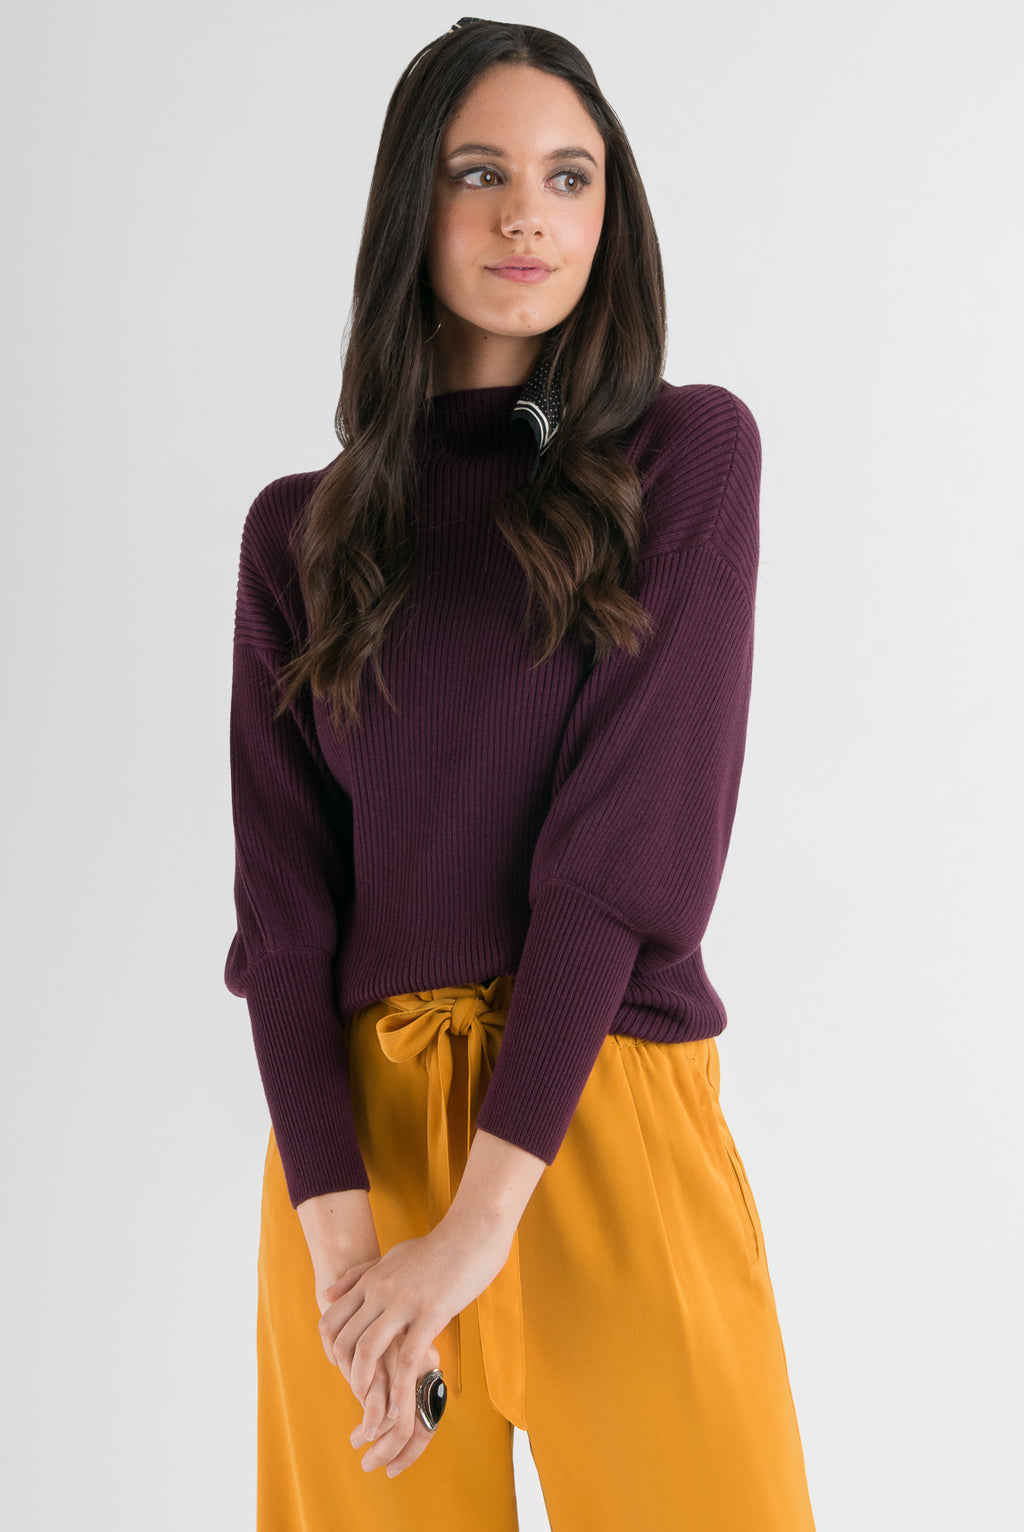 Blouson Sleeve Sweater - Merlot